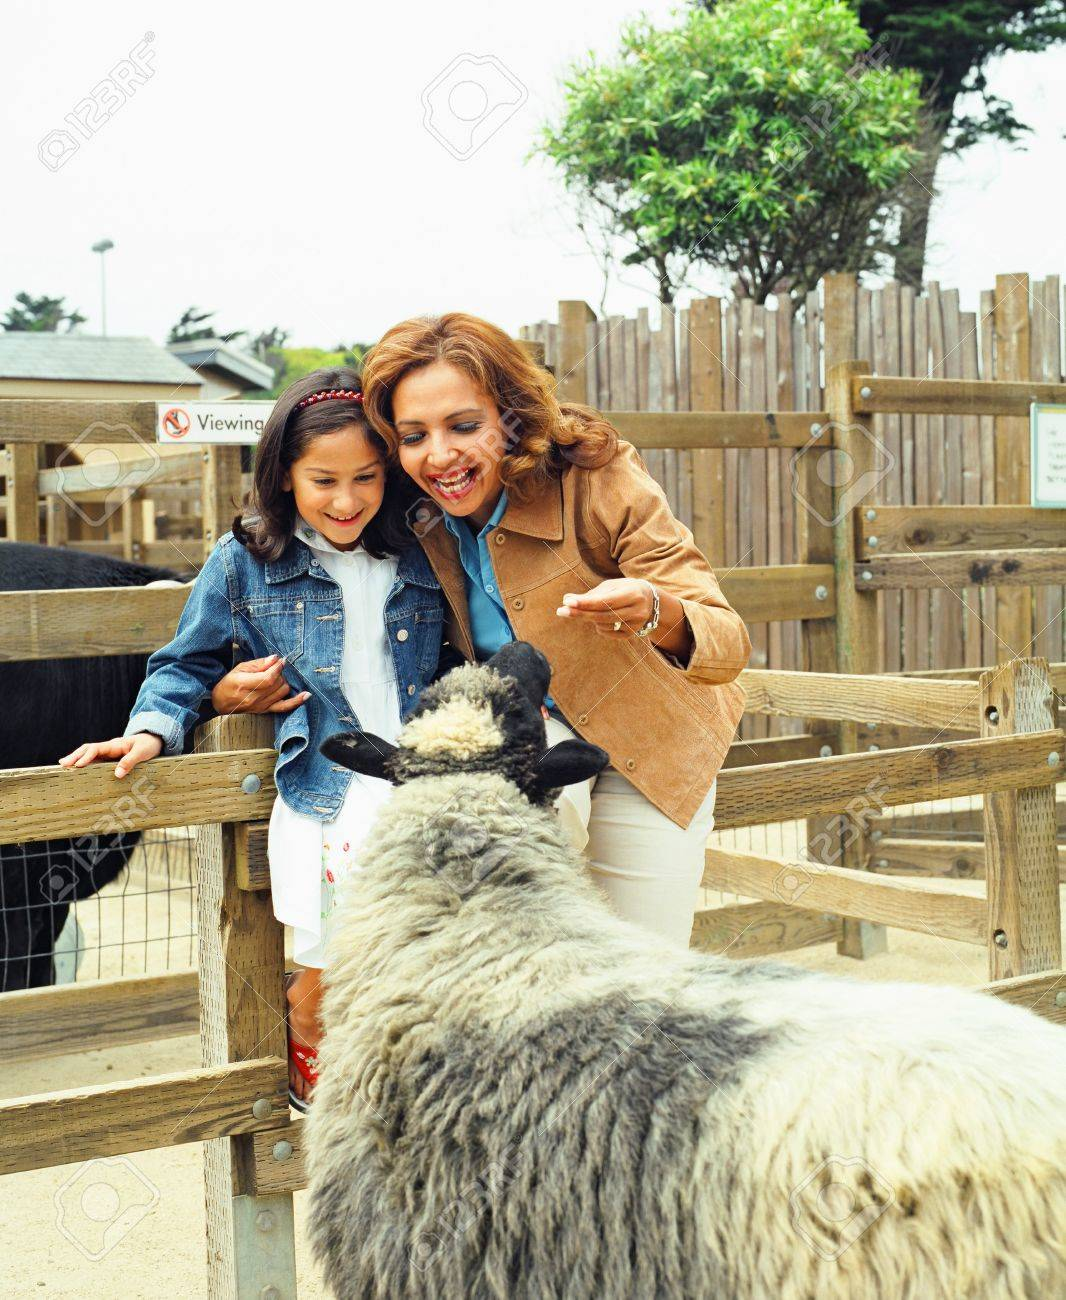 Mother and daughter looking at sheep behind a fence Stock Photo - 16044701